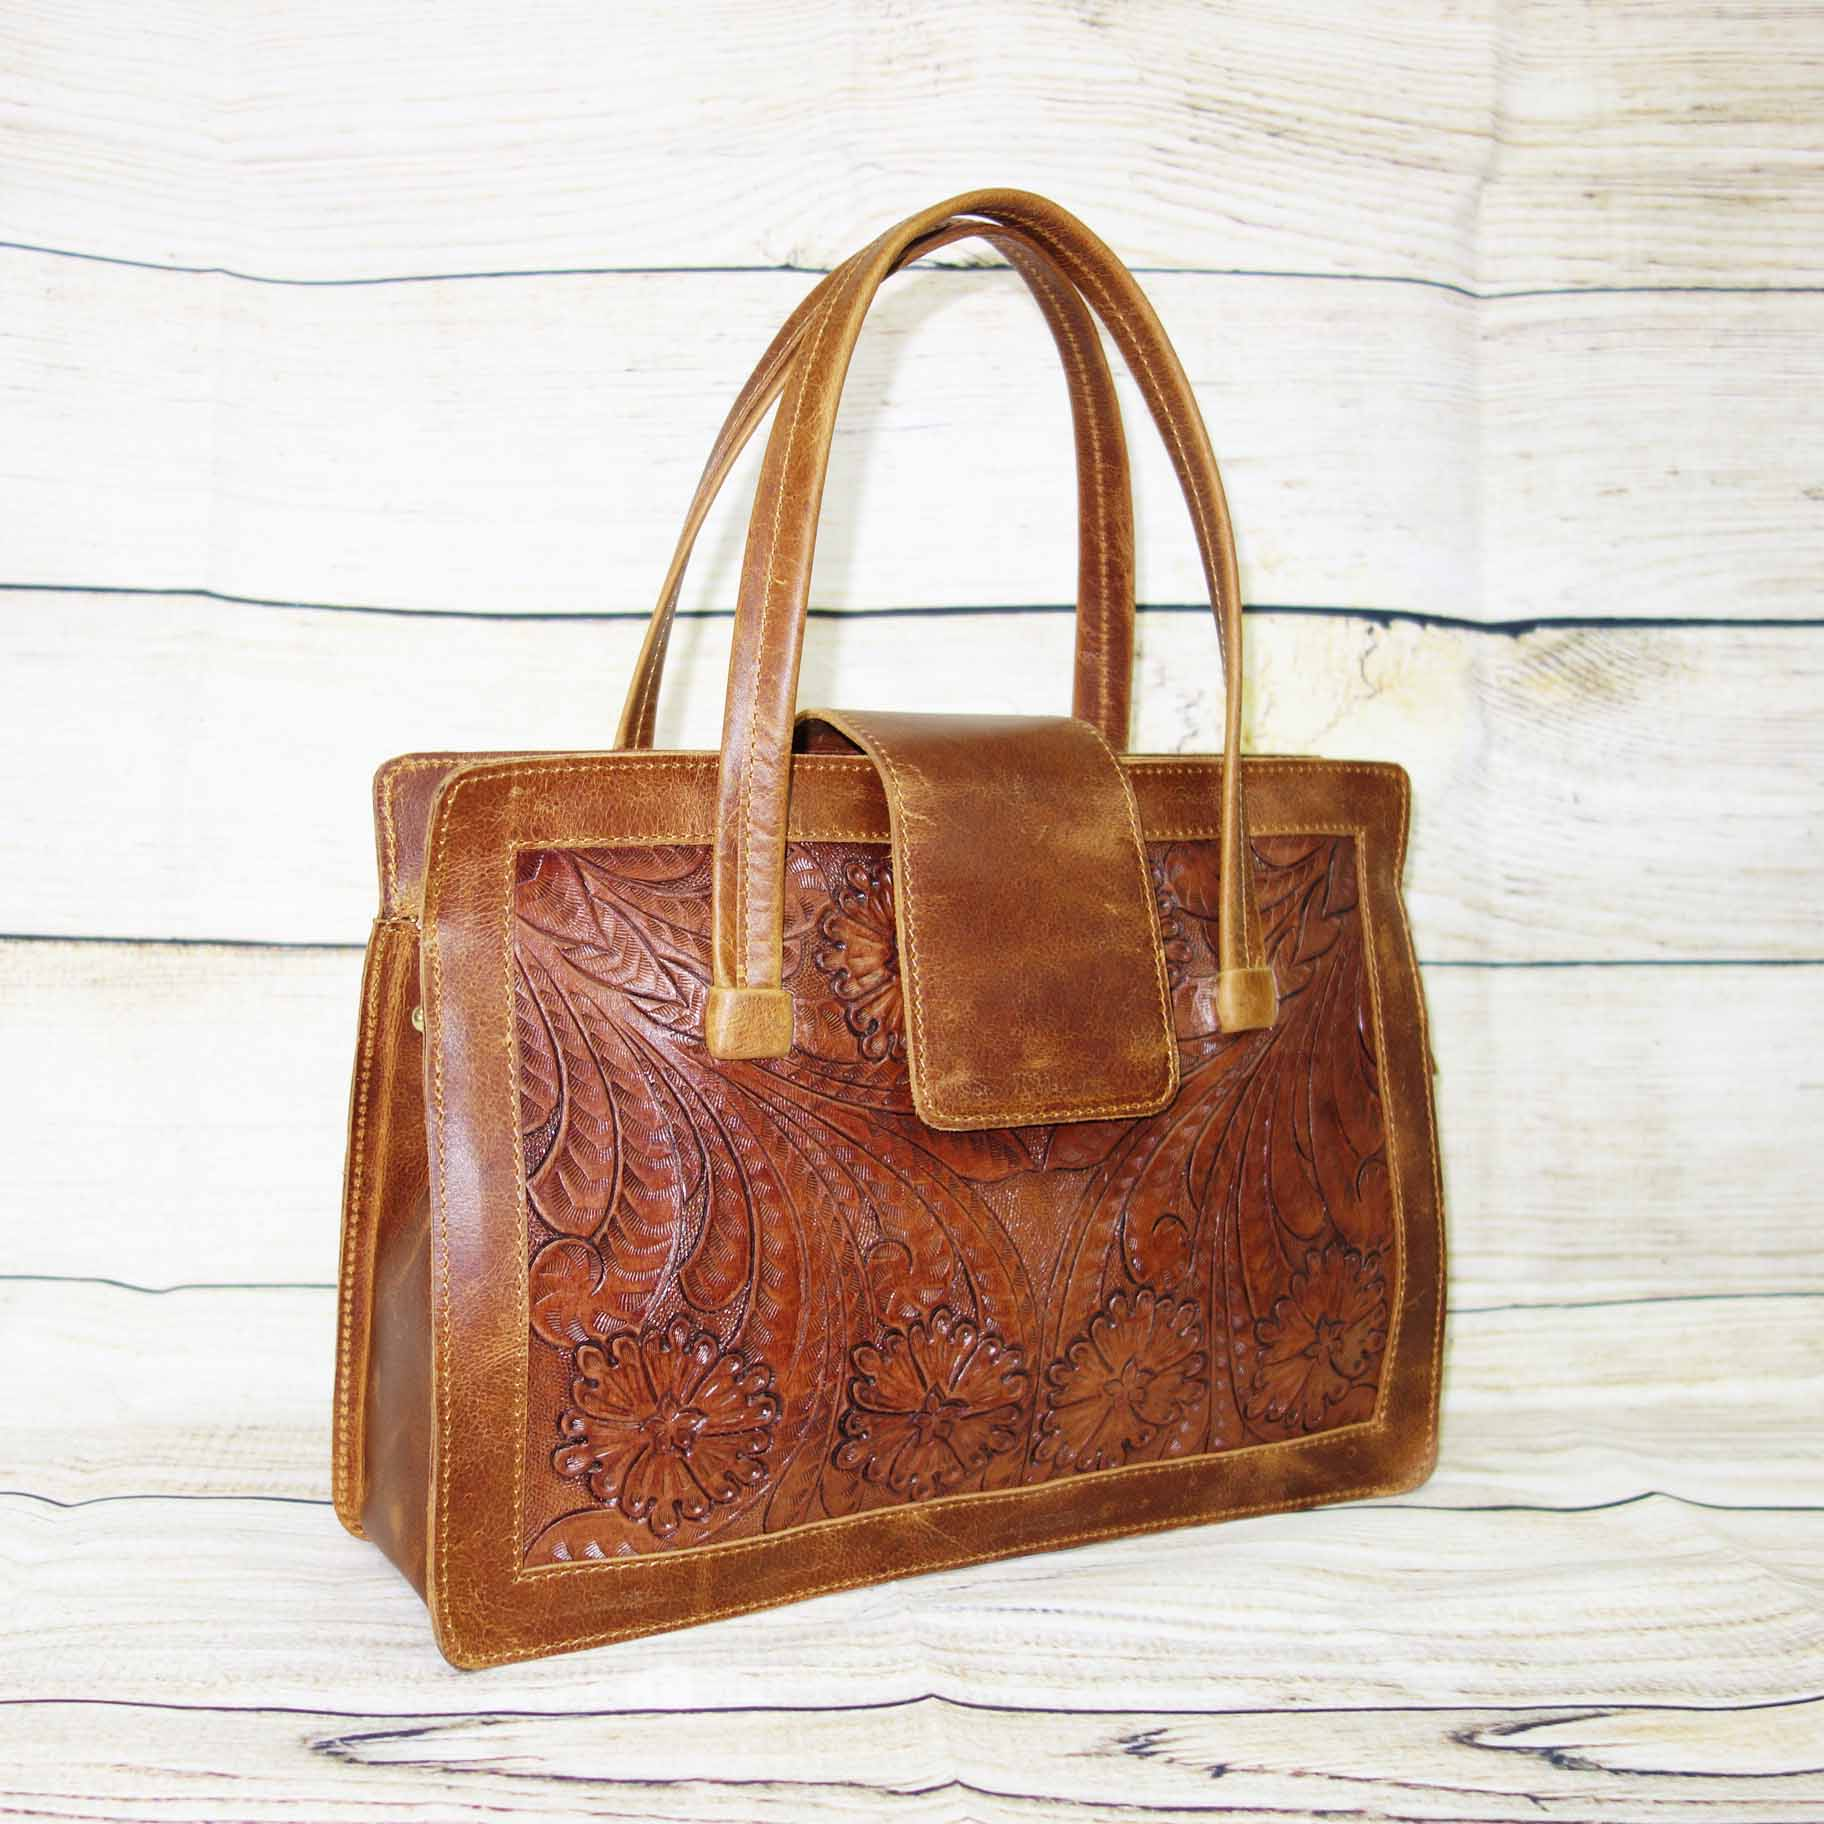 Handmade Genuine Shoulder Bag for Women, Beautiful Floral Leather Bag for Women, Brown & Cherry Color, 100% Real Leather